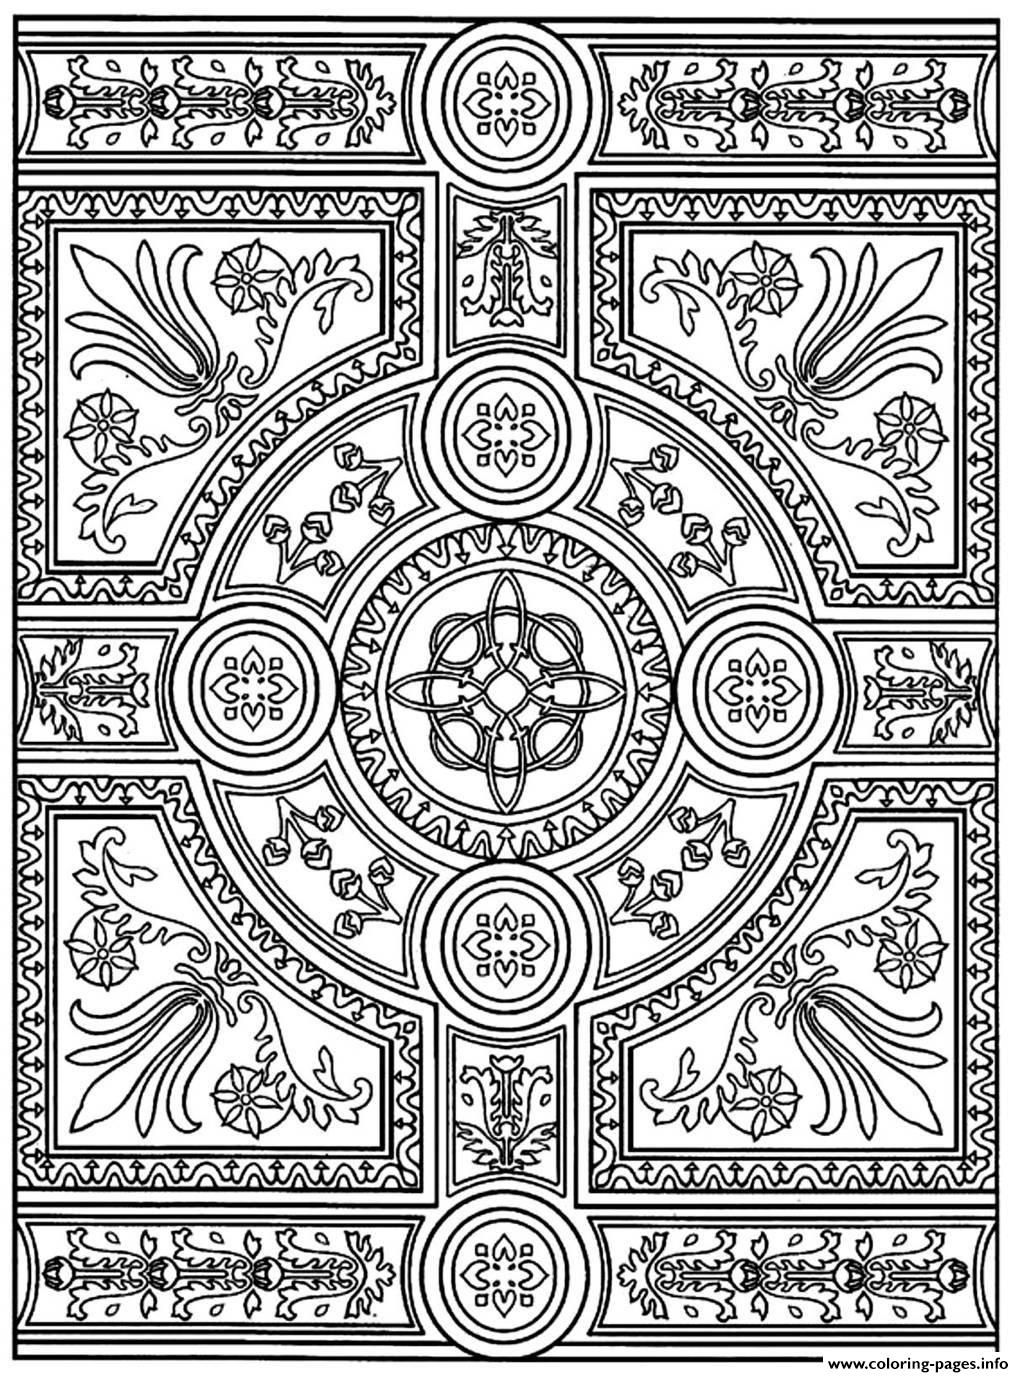 coloring pages for adults - Google Search | Apartment welcome home ...